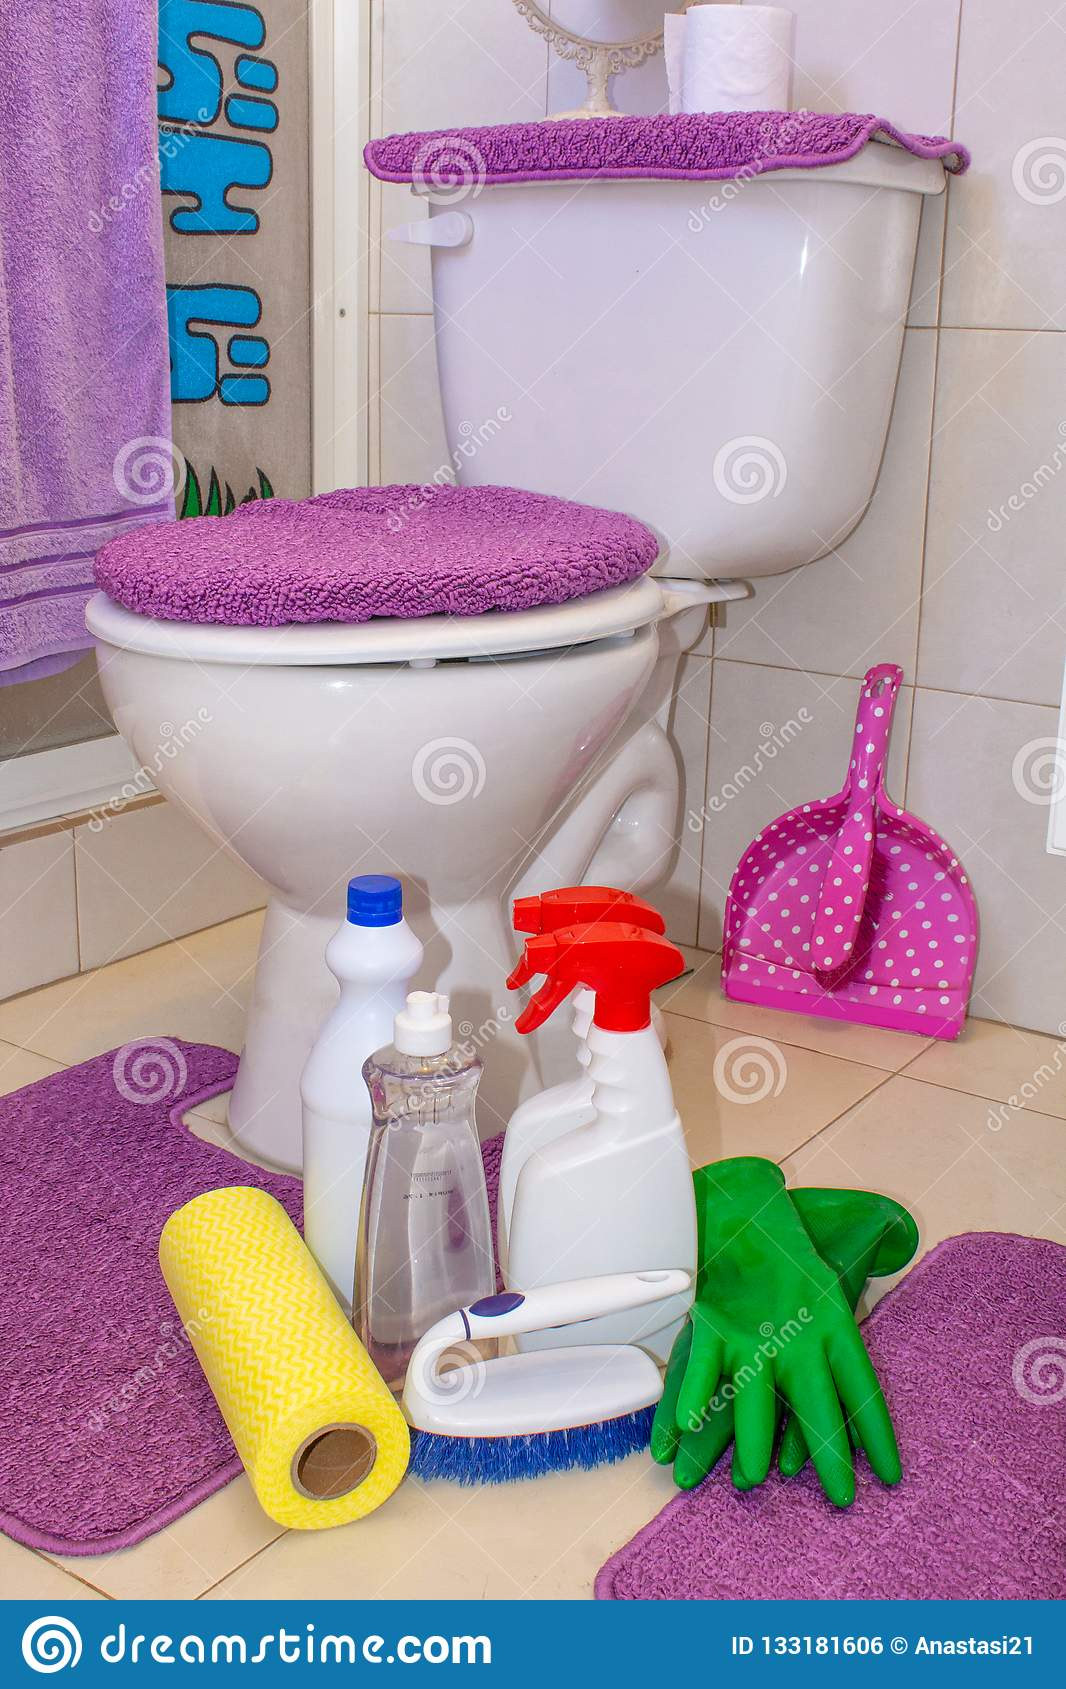 Toilet Cleaning Tidying, Detergents, Chemicals, Sponges